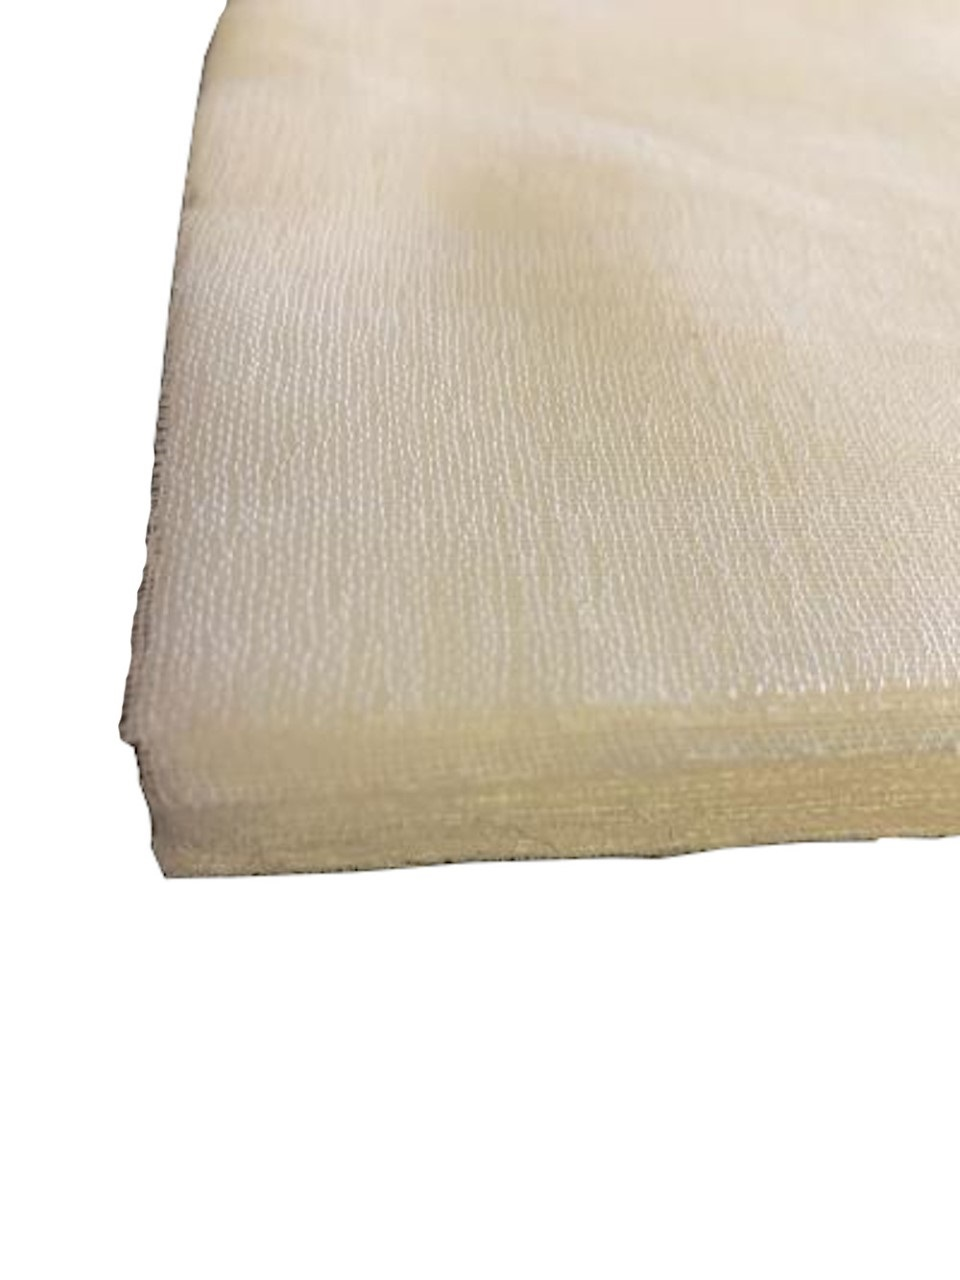 "90 Grade Cheesecloth 18"" x 18"" Squares Bleached - 100 Pack"